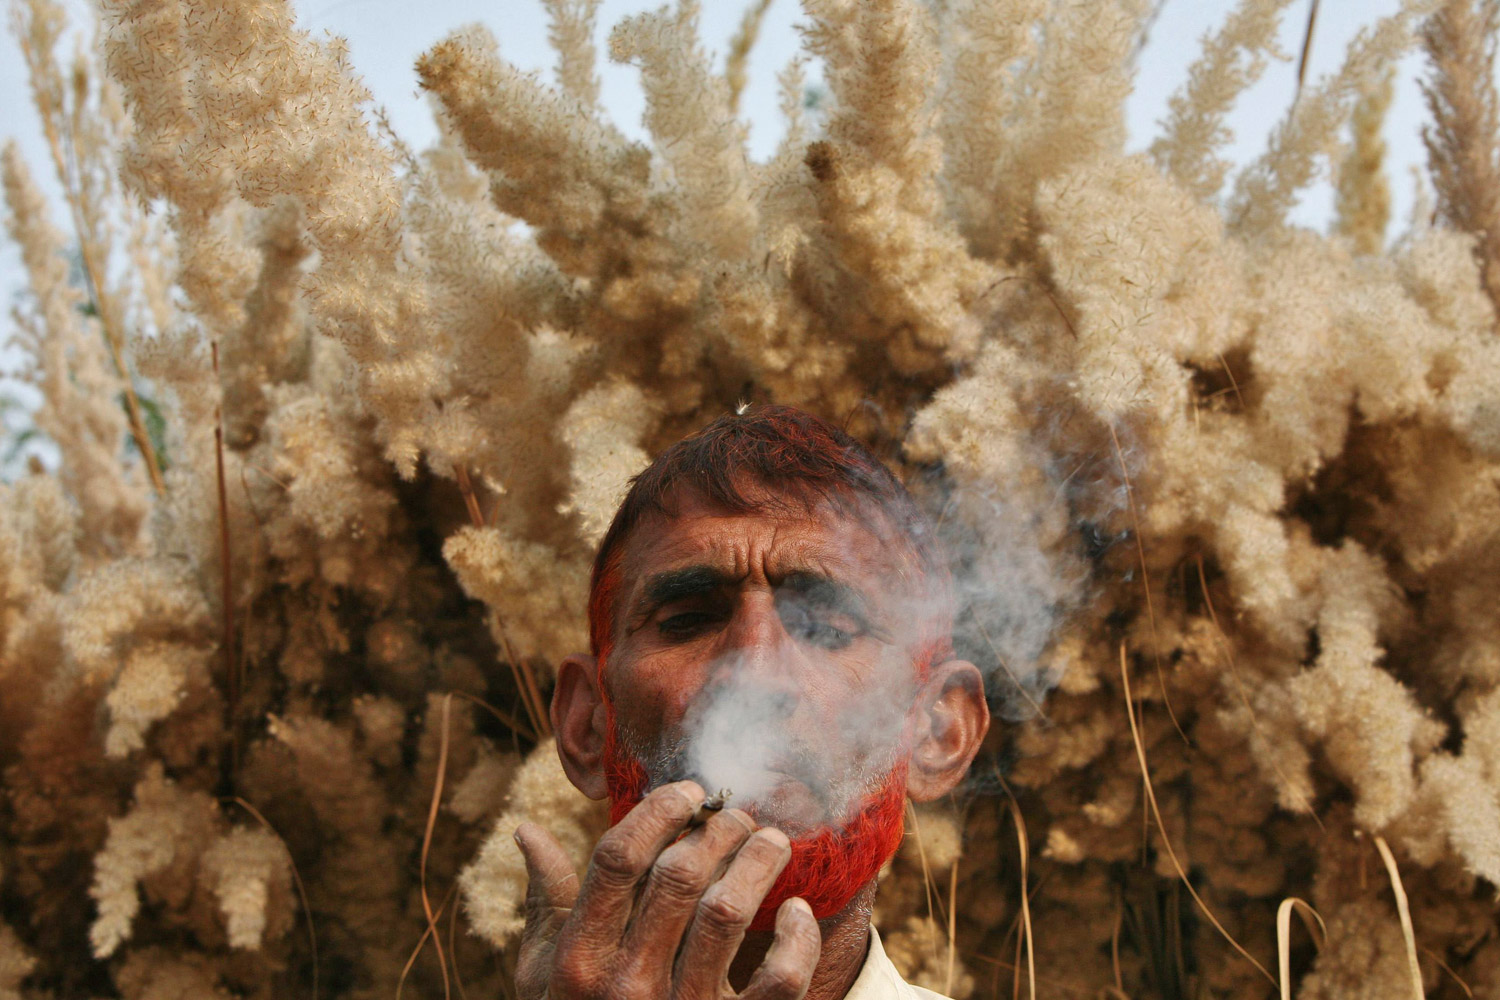 November 22, 2011. Farmer Noor Din, 53, smokes a bidi, or an Indian leaf cigarette, in front of saccharum grass on the outskirts of Jammu.